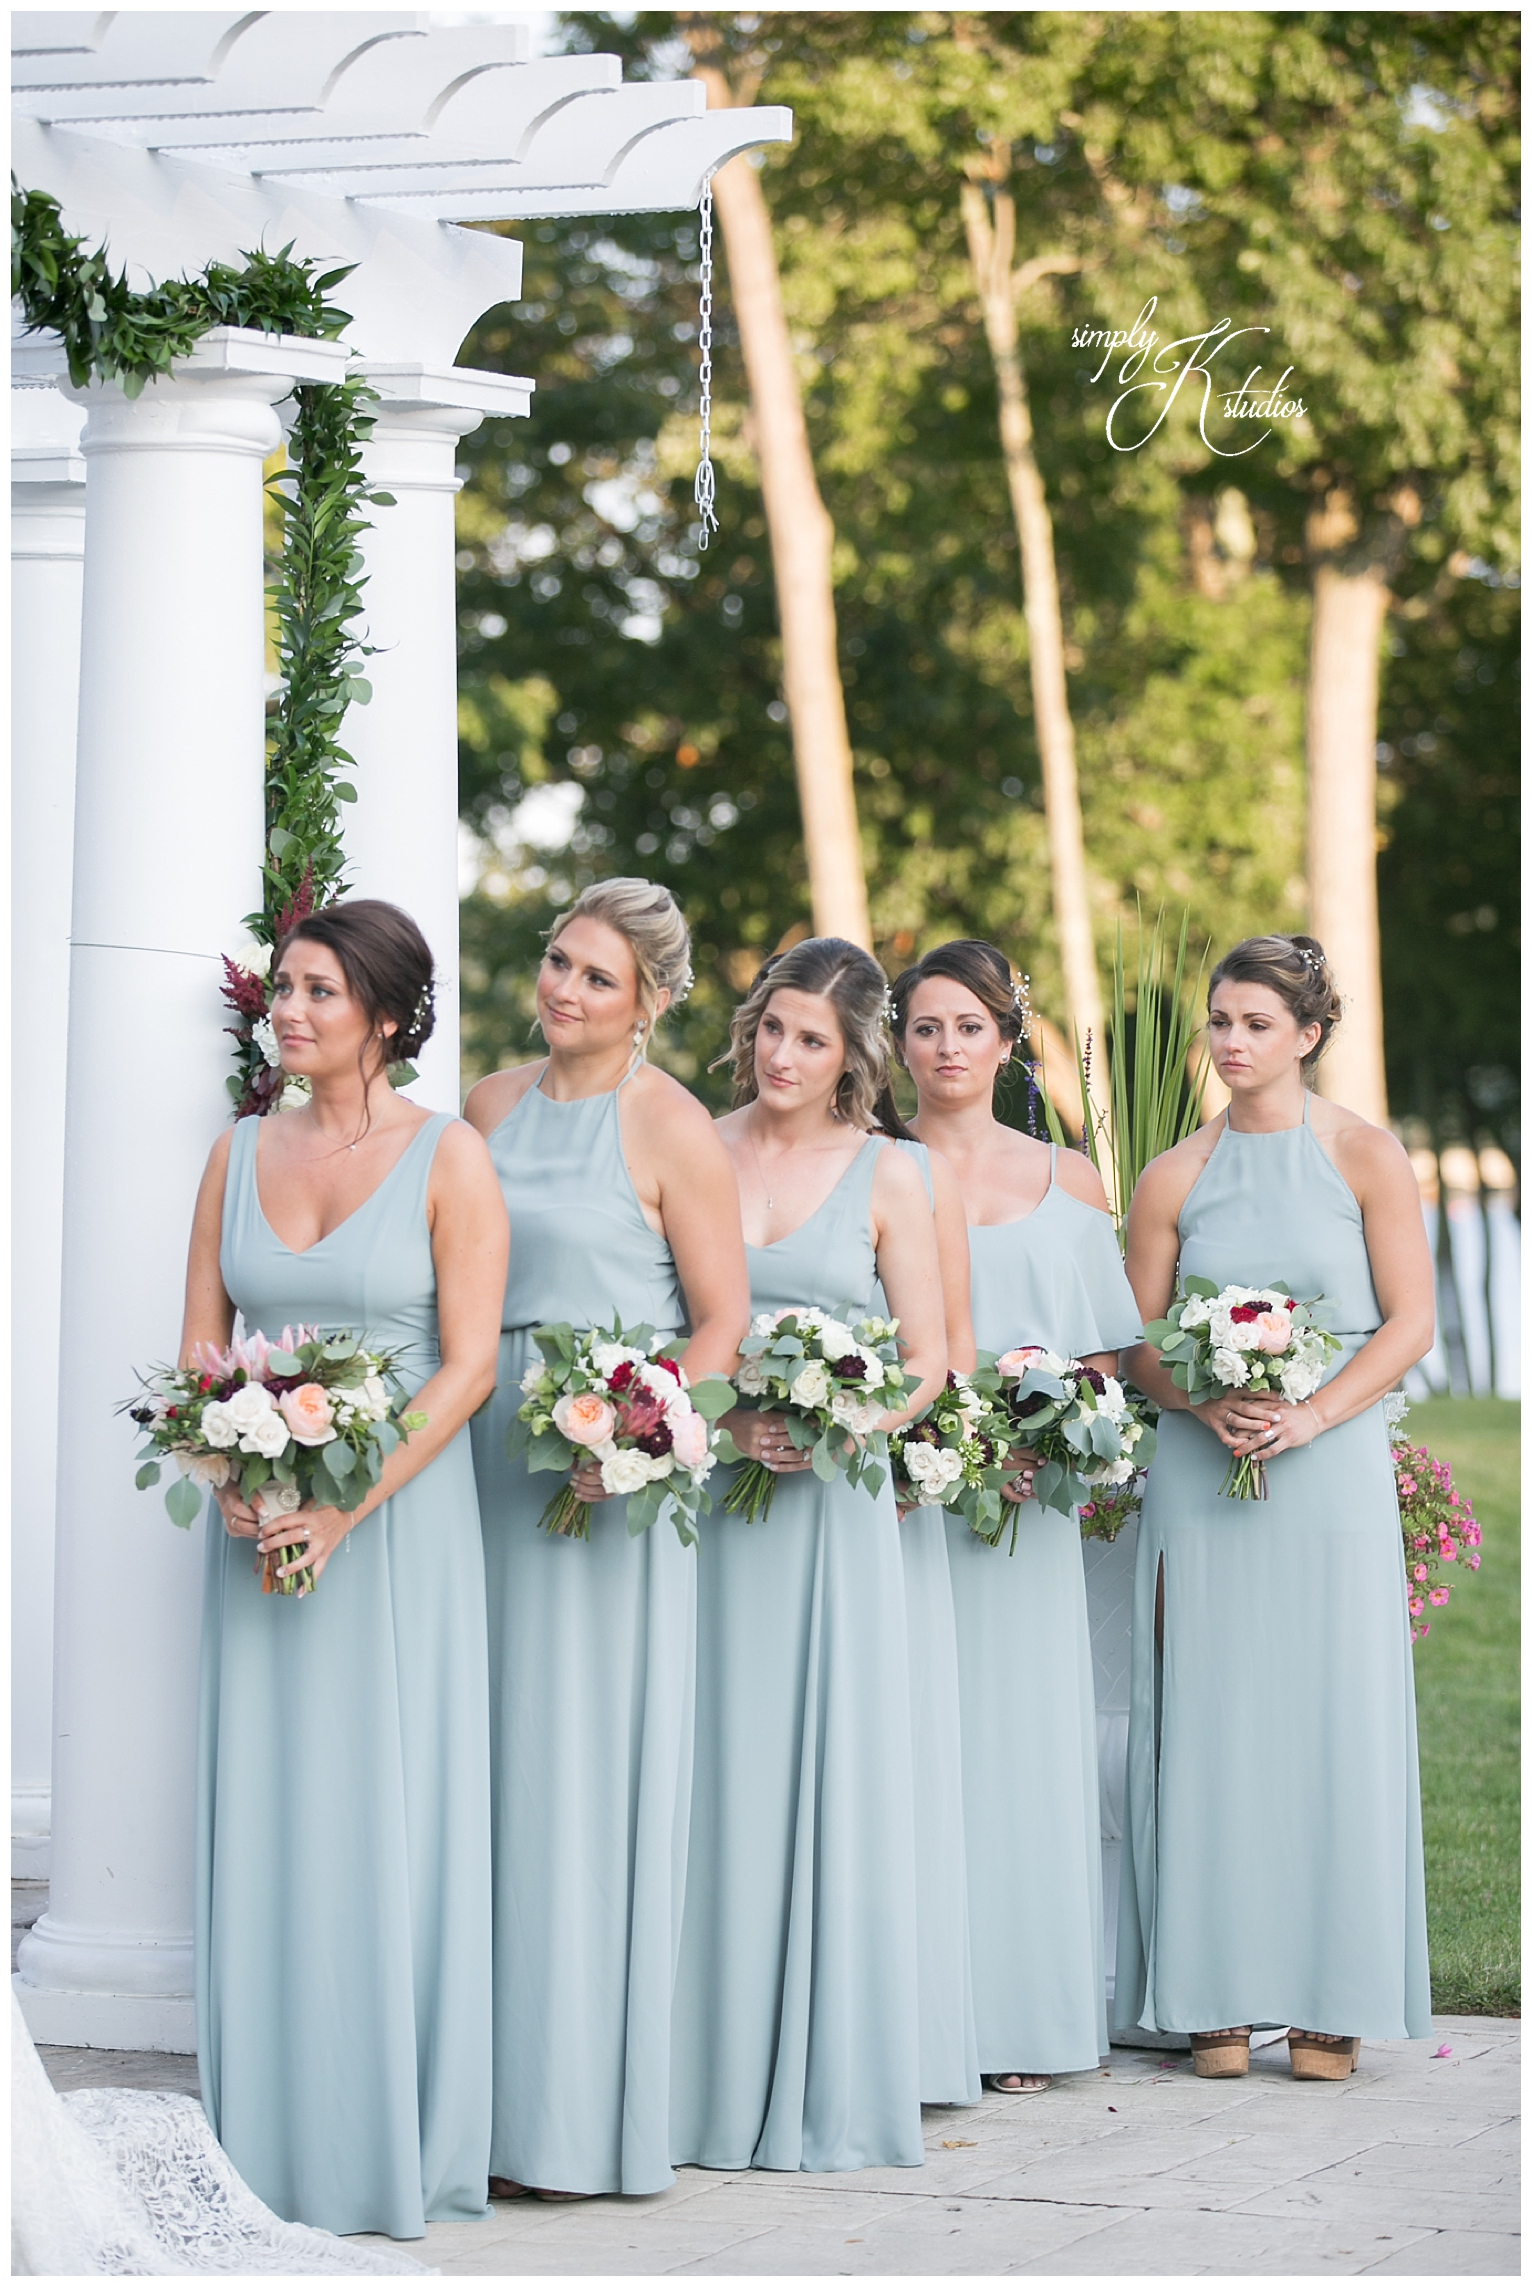 Bridesmaid Dresses.jpg